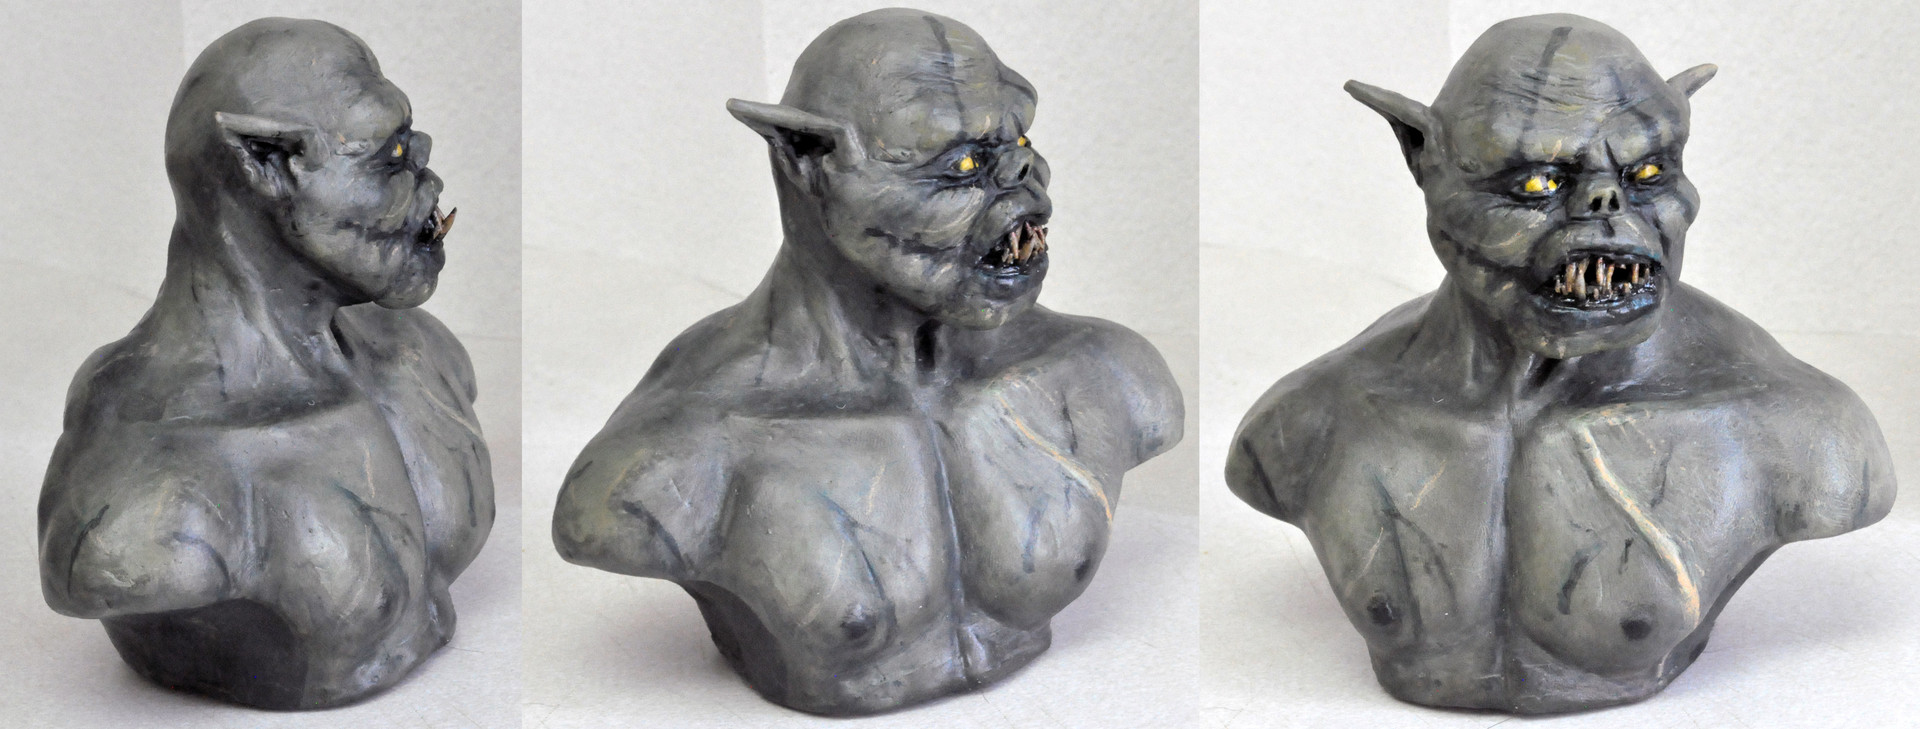 Gregory george orcbust1